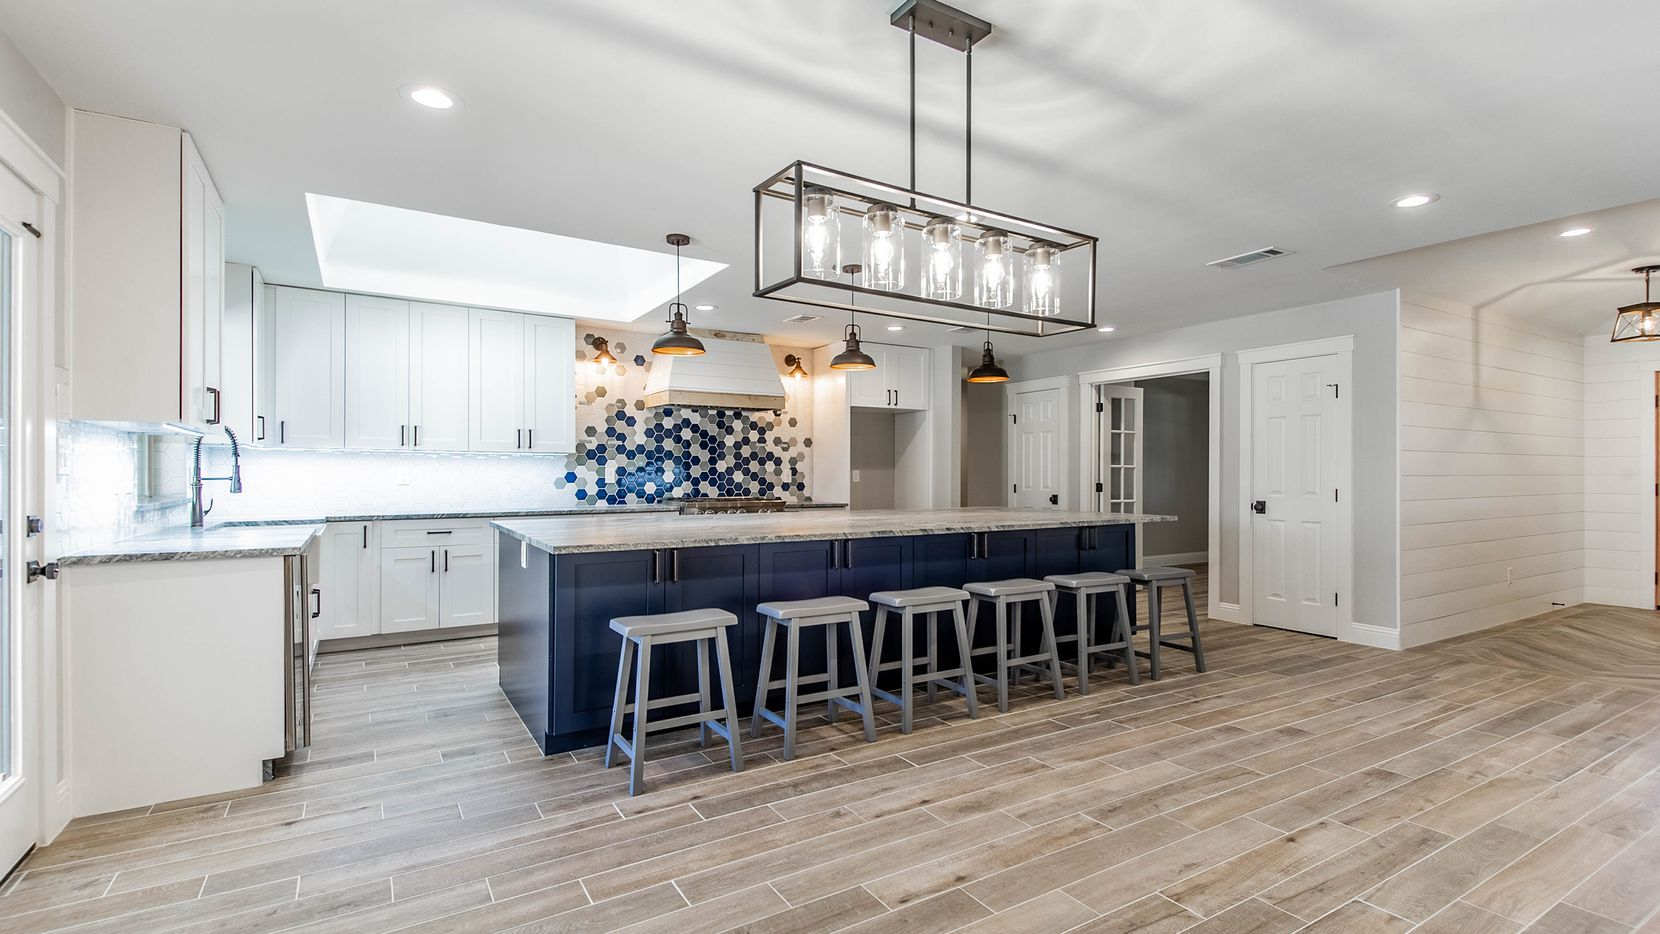 Texas Triad Homes updated this Richardson kitchen with a large navy island featuring a pullout microwave drawer and a secondary oven.